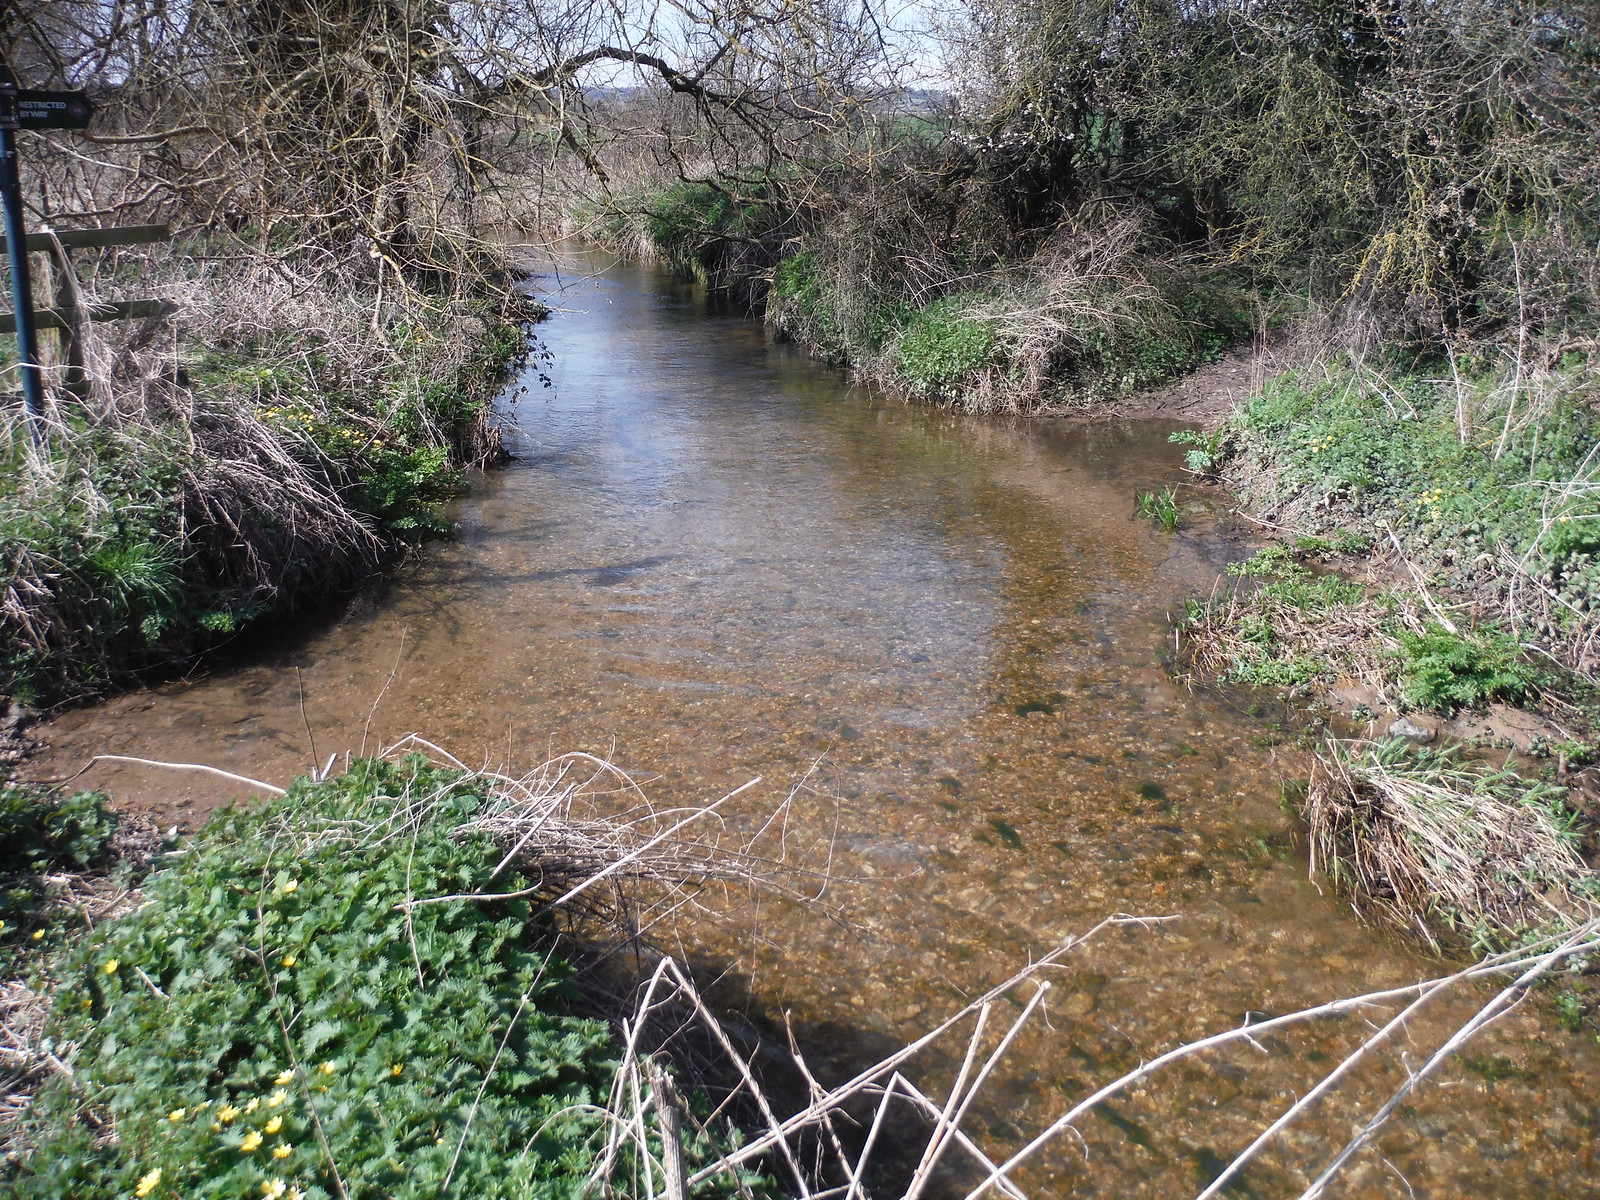 The River Pang SWC Walk 260 Aldermaston to Woolhampton [Midgham Station] (via Frilsham)